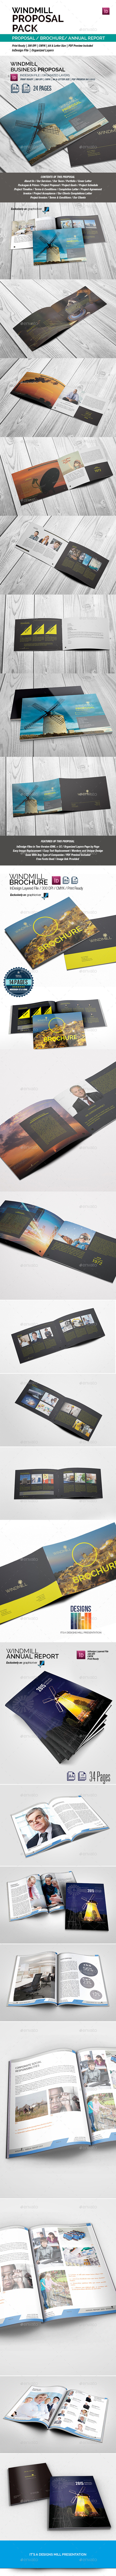 Windmill  Proposal Bundle Pack - Proposals & Invoices Stationery